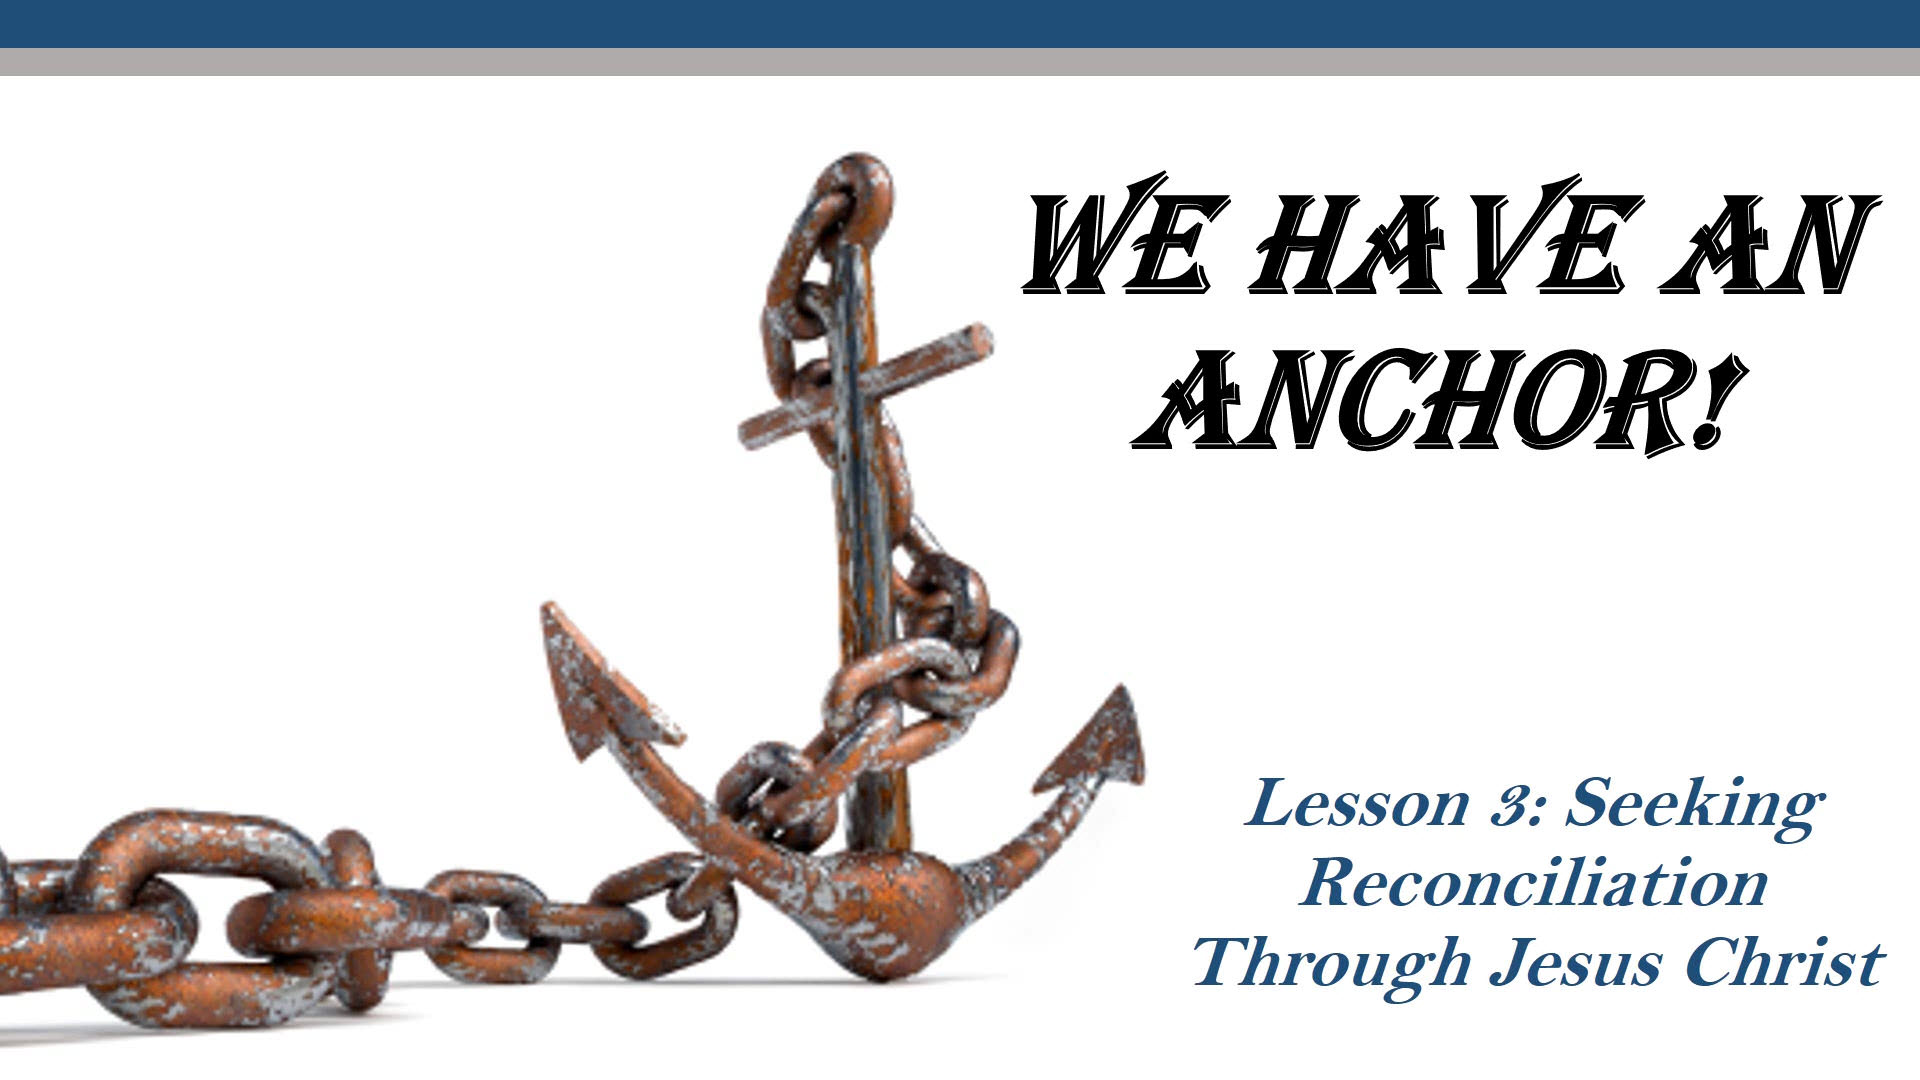 We Have Anchor (Lesson 3: Seeking Reconciliation Through Jesus Christ)